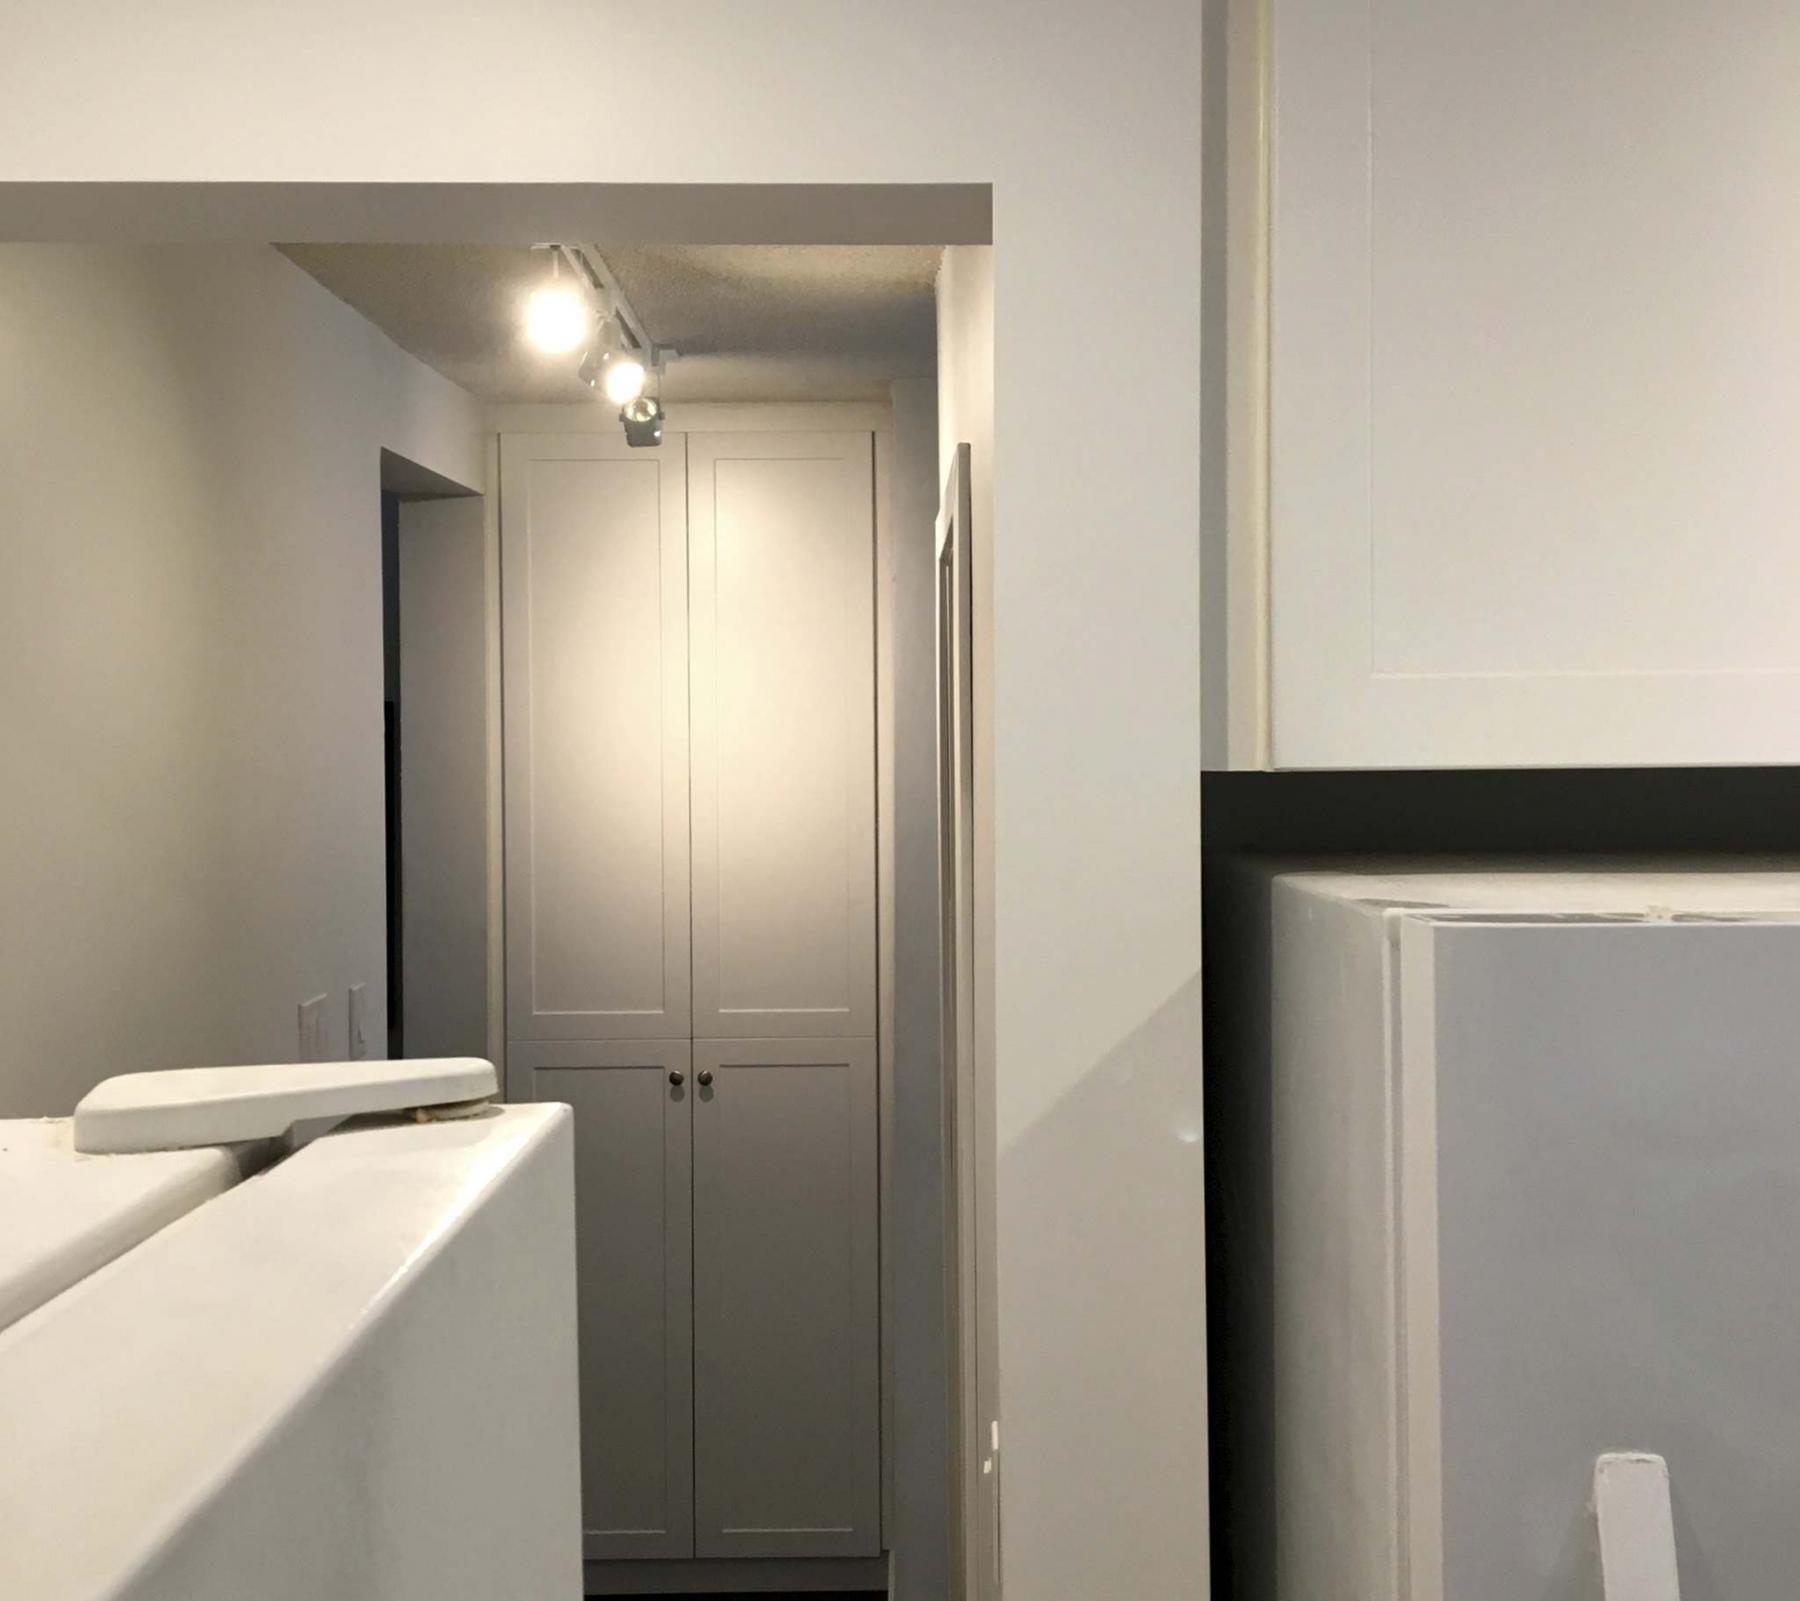 <p>Because the cupboard/pantry matches the new kitchen cupboards, it appears as a mere extension of the kitchen space even though it is located at the other end of the hall. </p>